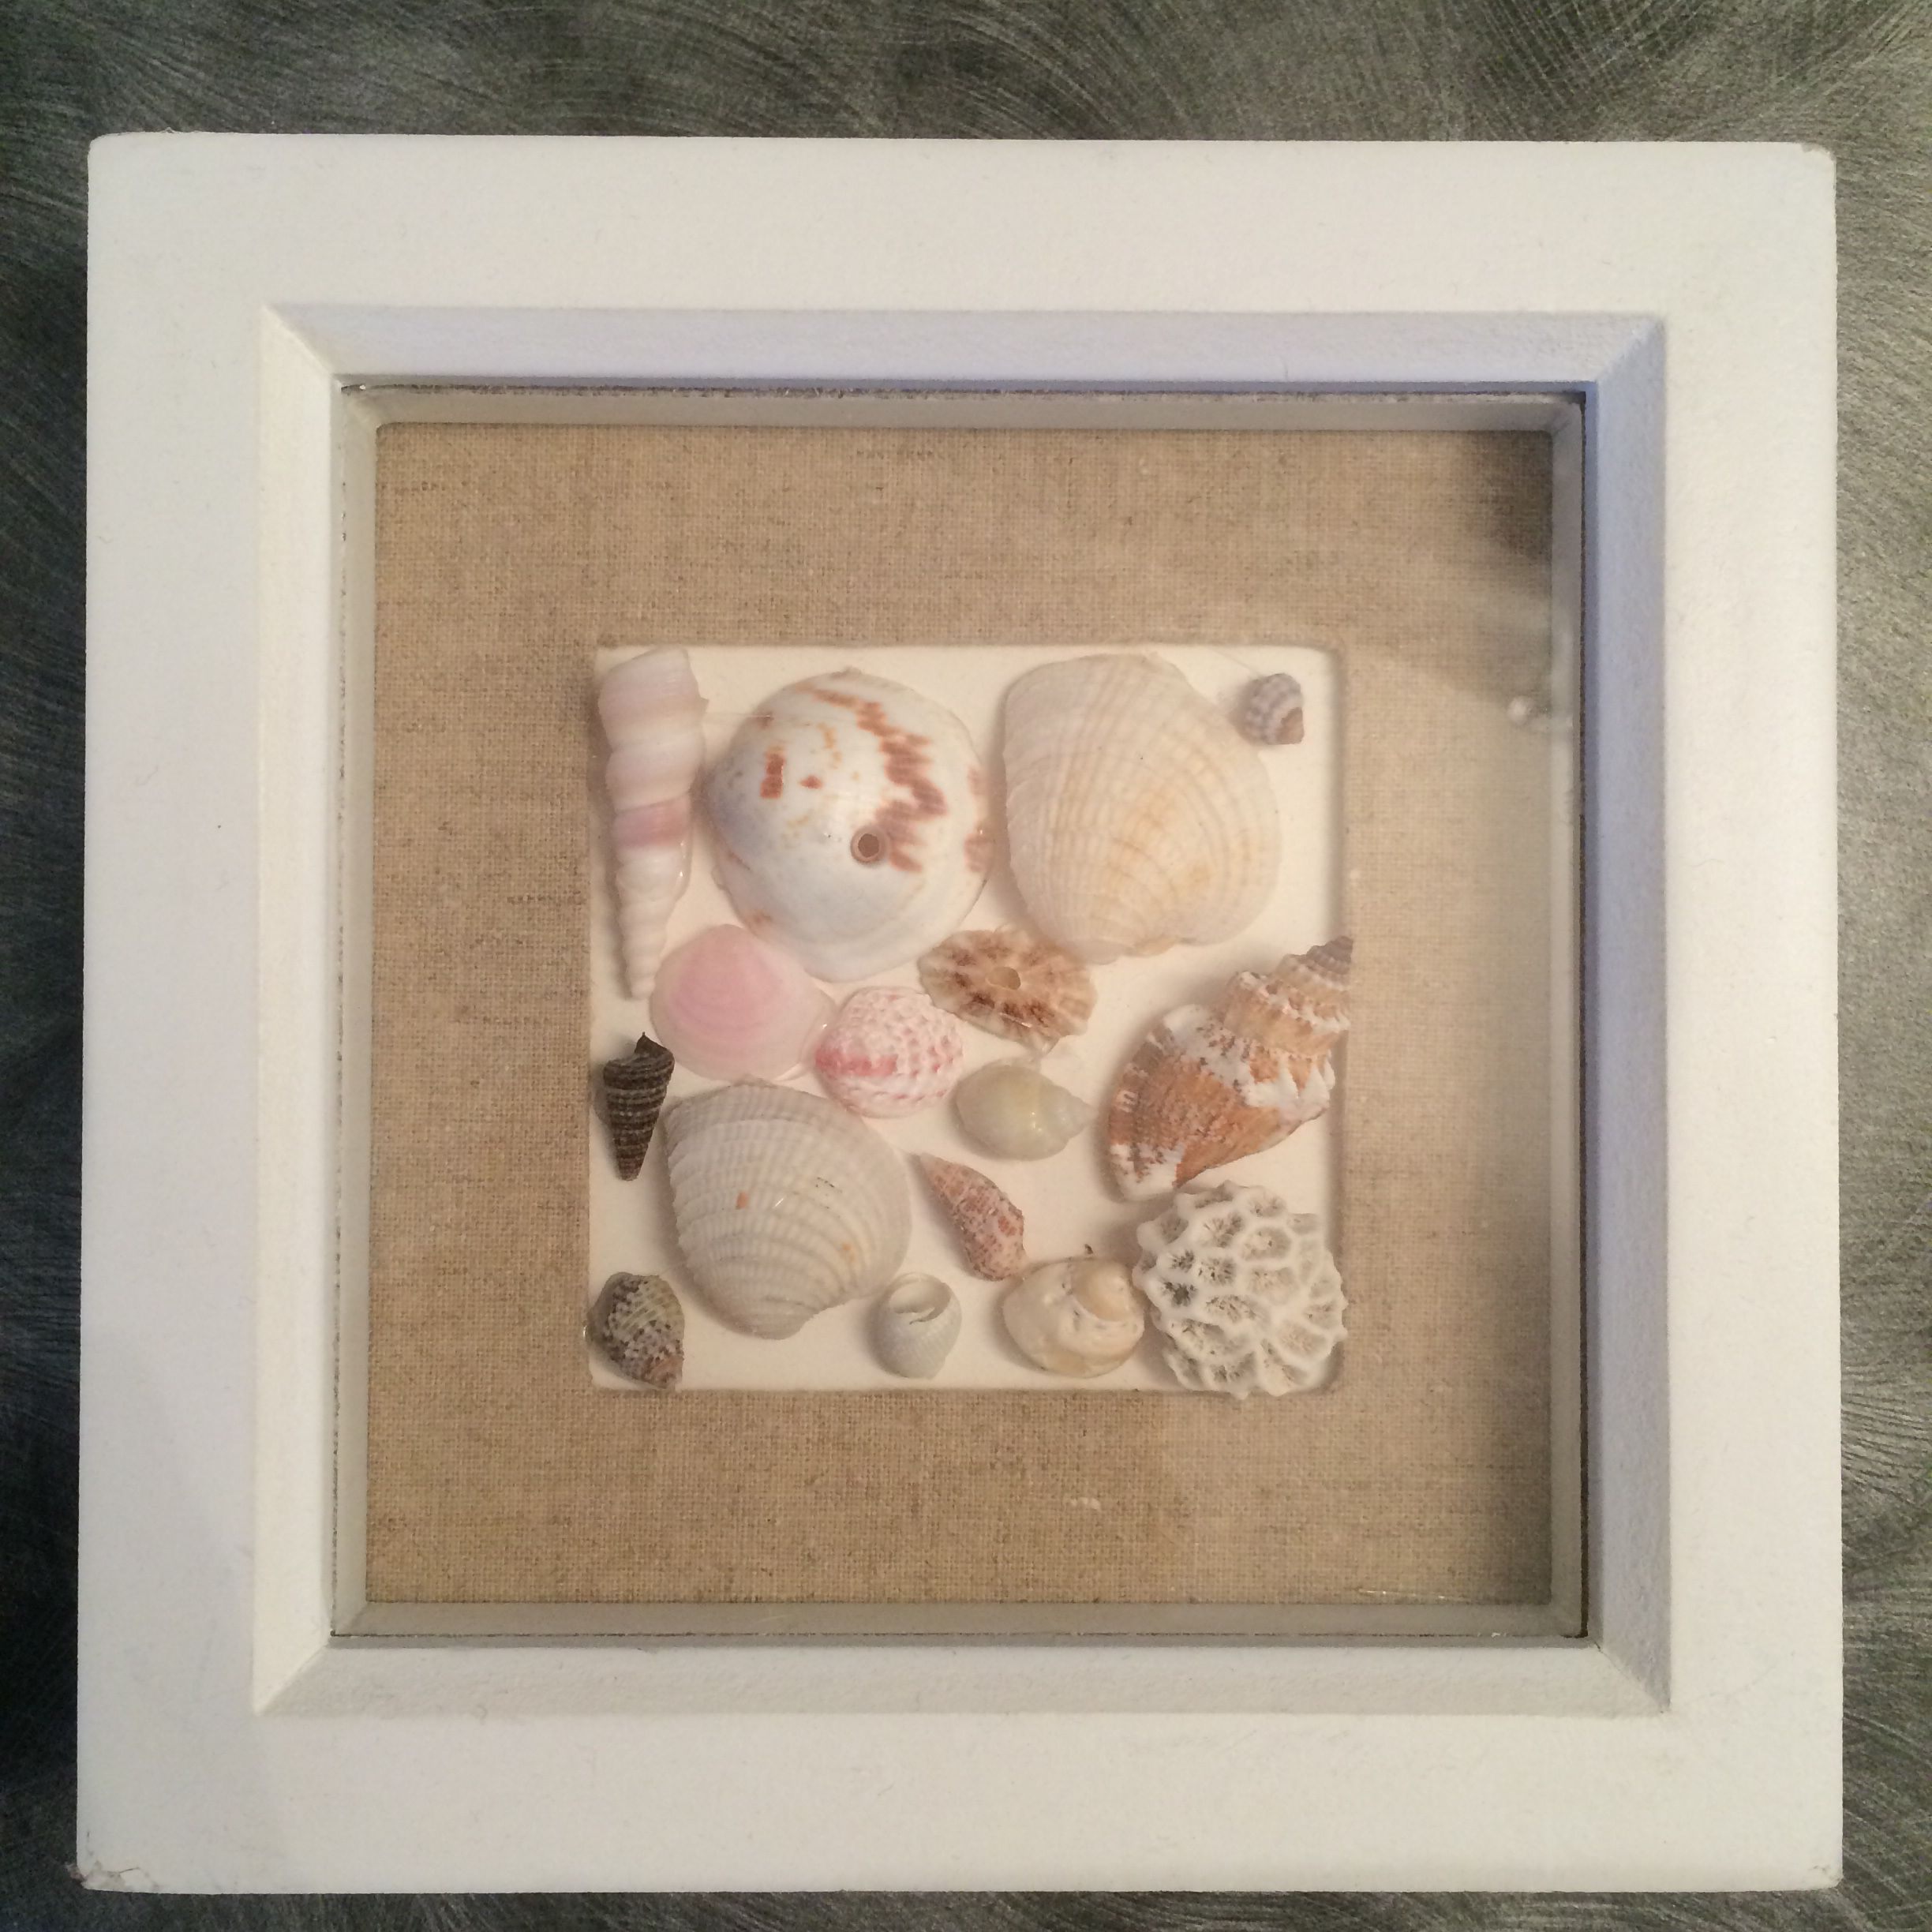 My daughter glue gunned vacation shells into a small shadow box my daughter glue gunned vacation shells into a small shadow box frame from target solutioingenieria Image collections